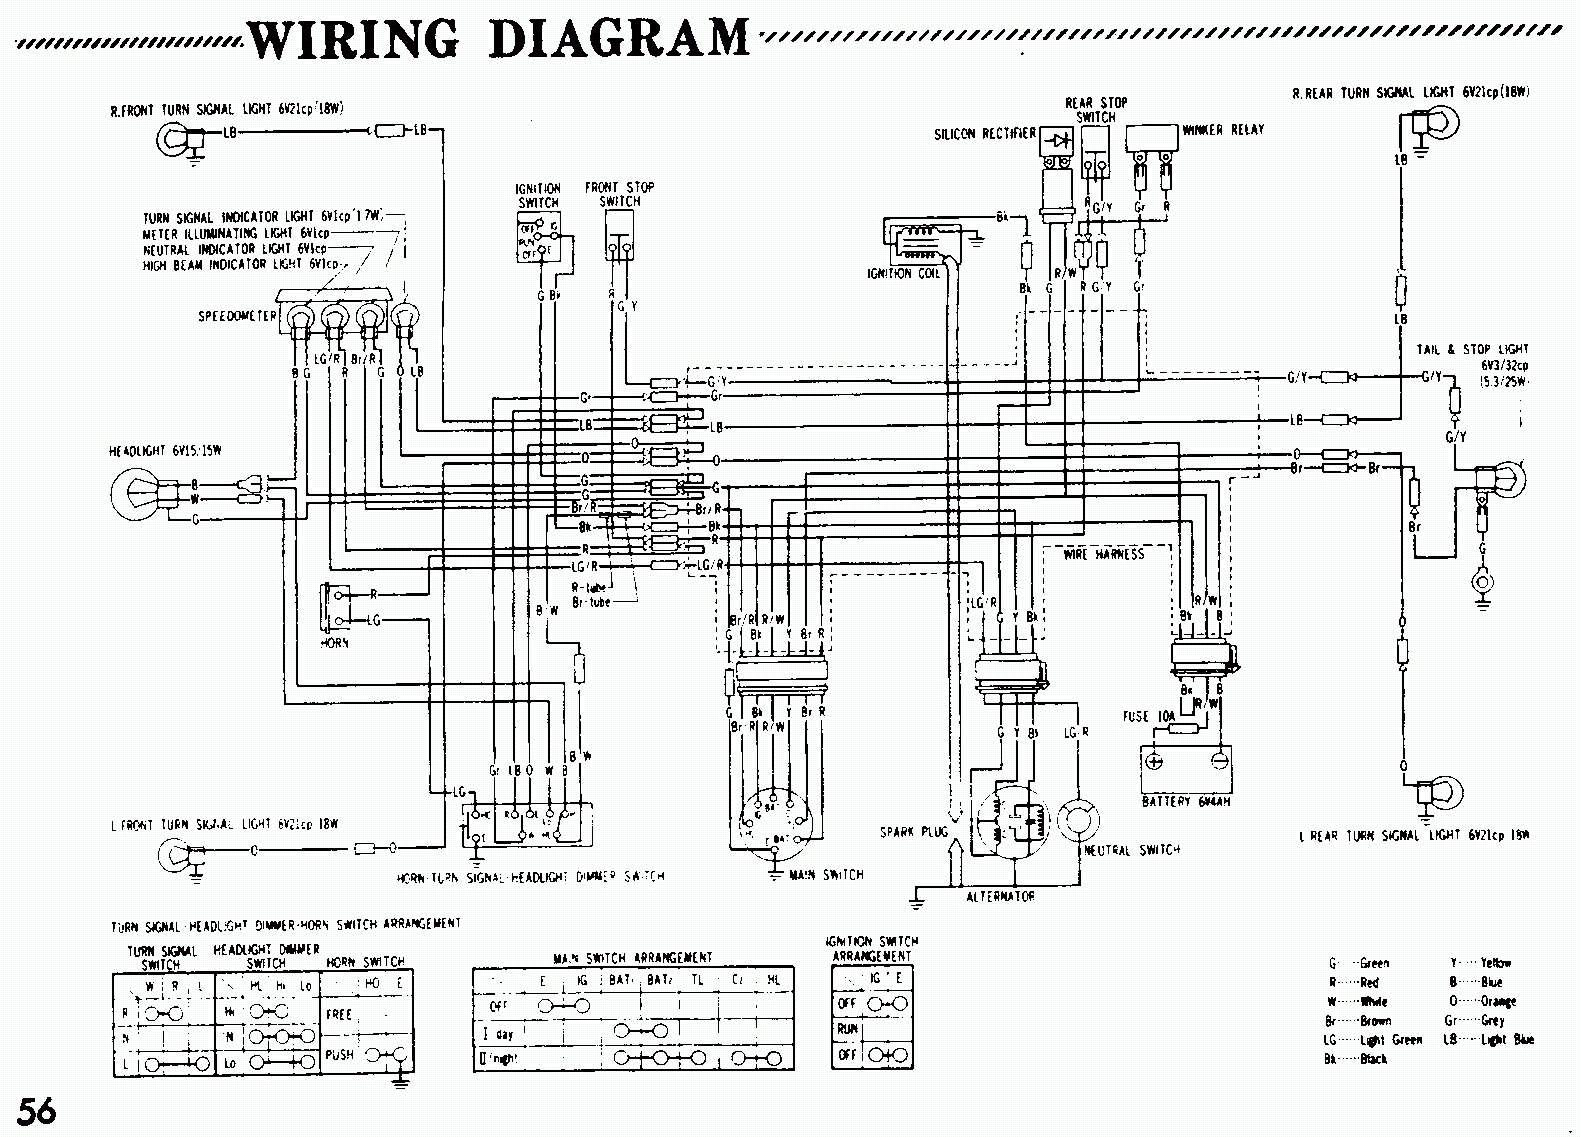 honda ct70 1976 wiring diagram tbolt usa tech database tbolt usa, llc Honda CT70 Wiring-Diagram at mifinder.co